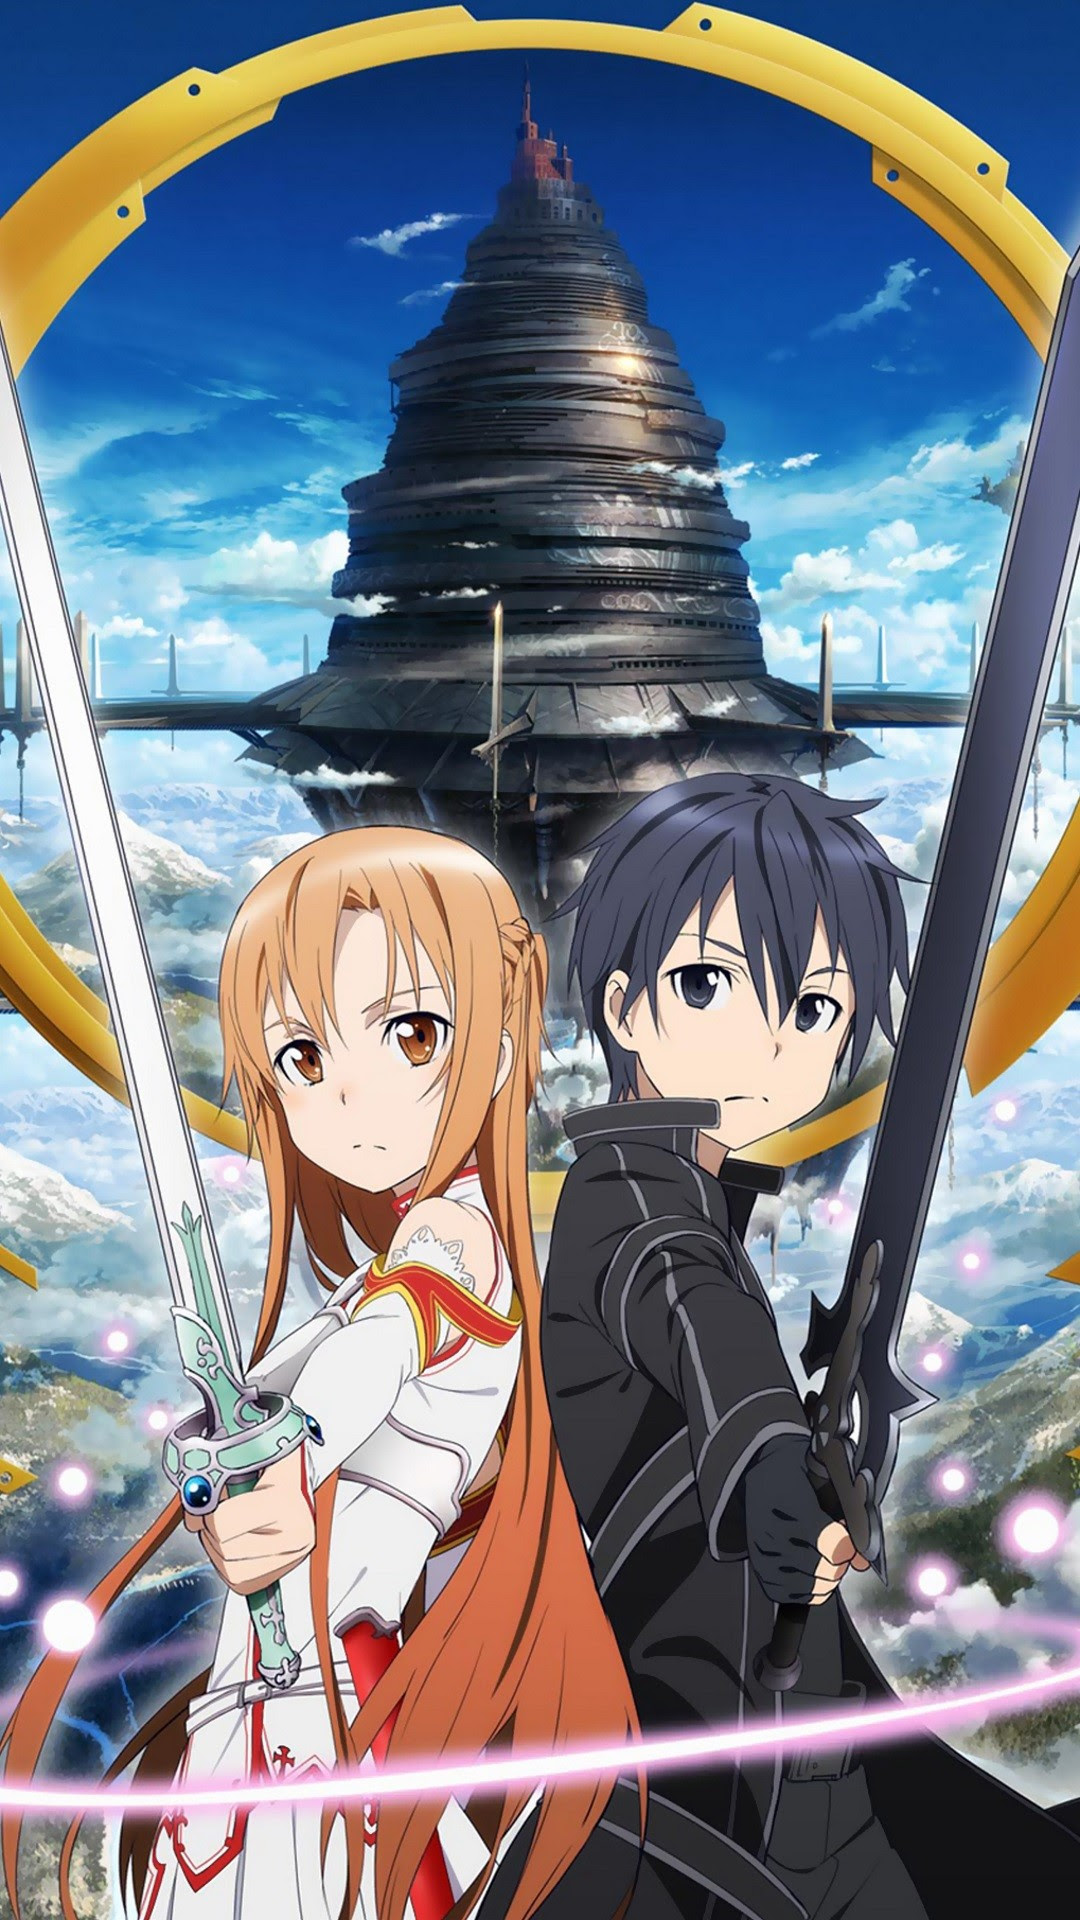 Sword Art Online Iphone Wallpaper 73 Images